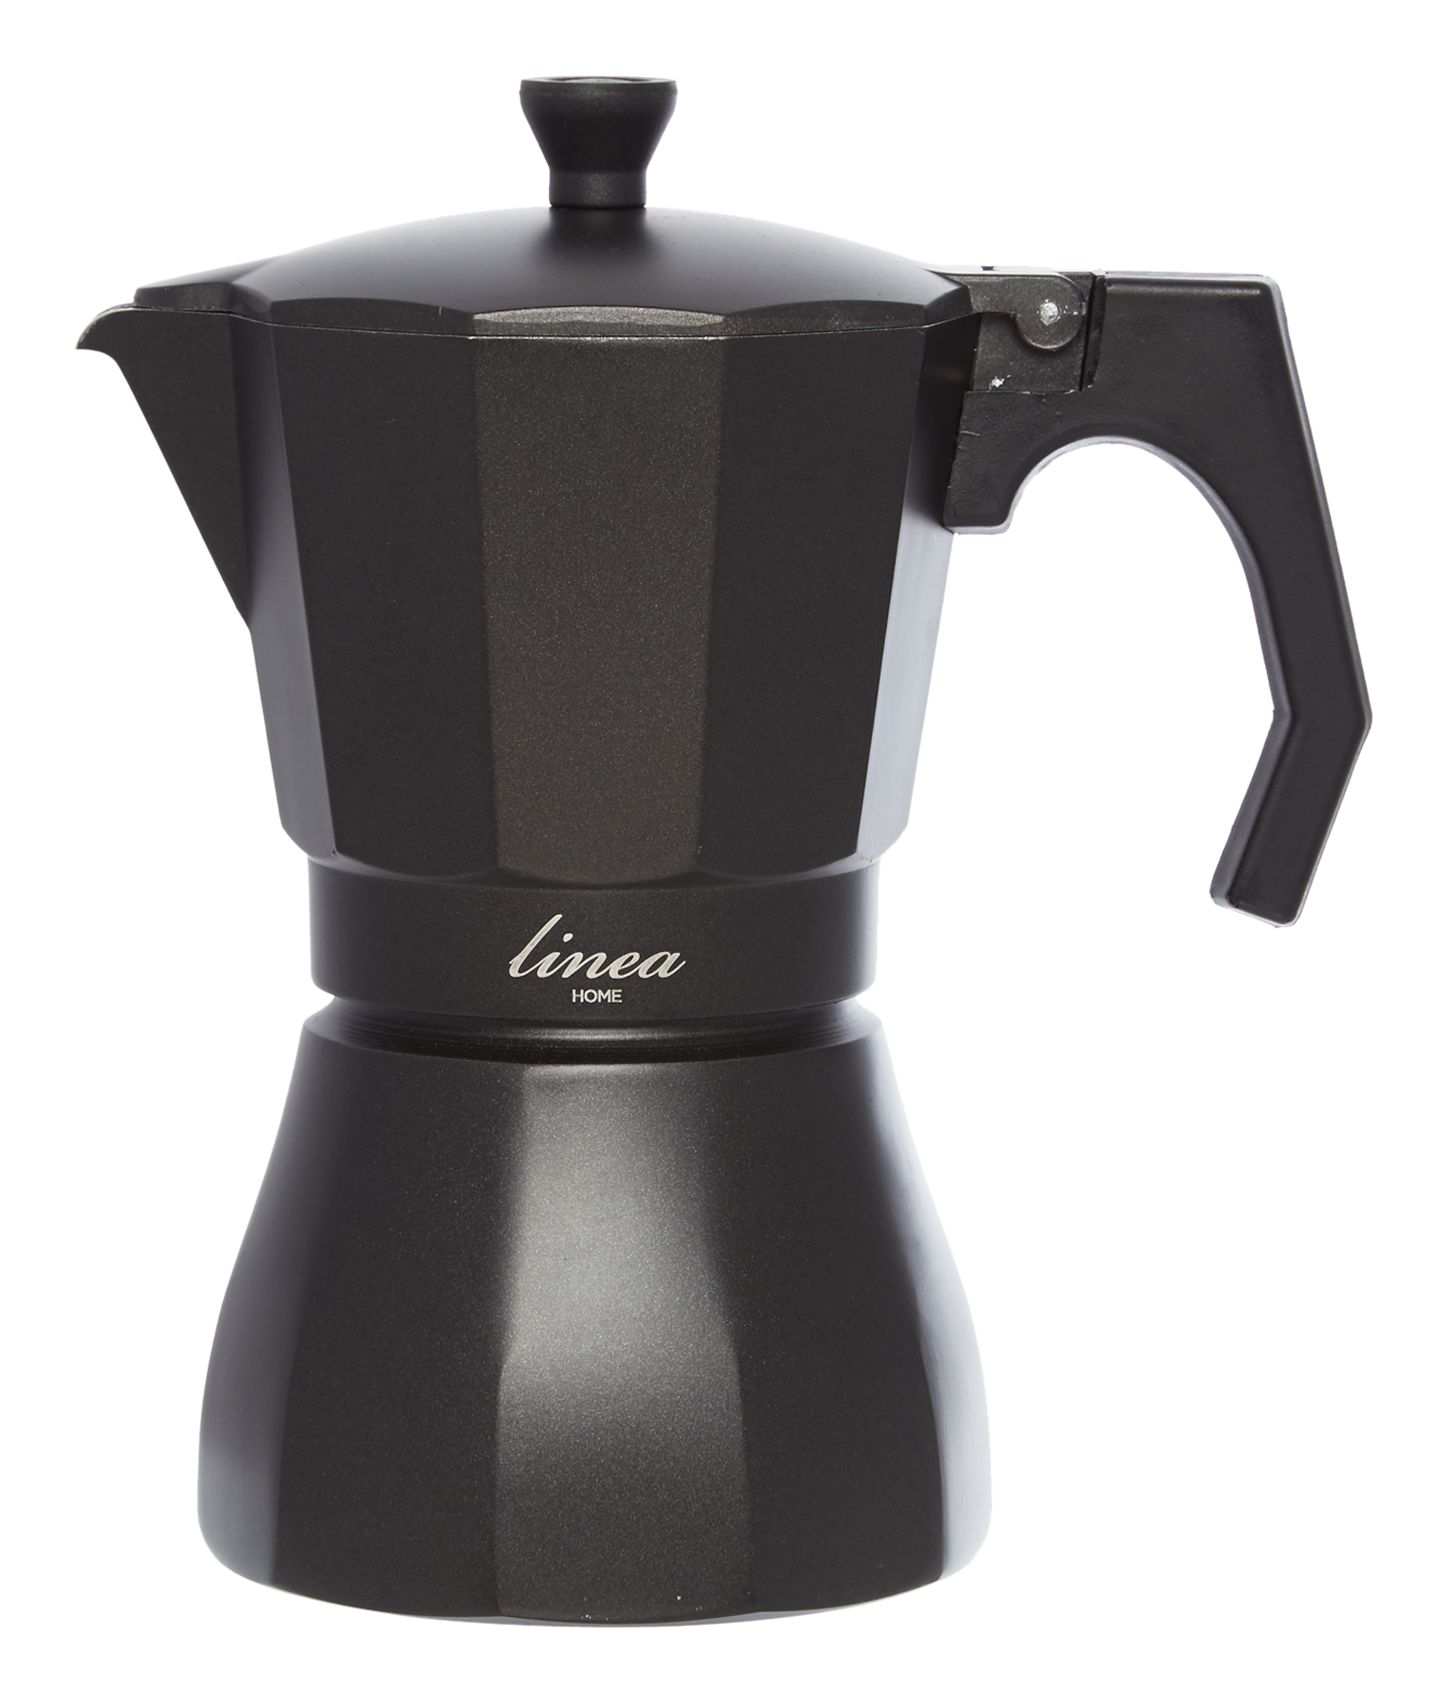 How Do You Say Coffee Maker In Italian : Electric water filter Shop for cheap Electric Kettles and Save online